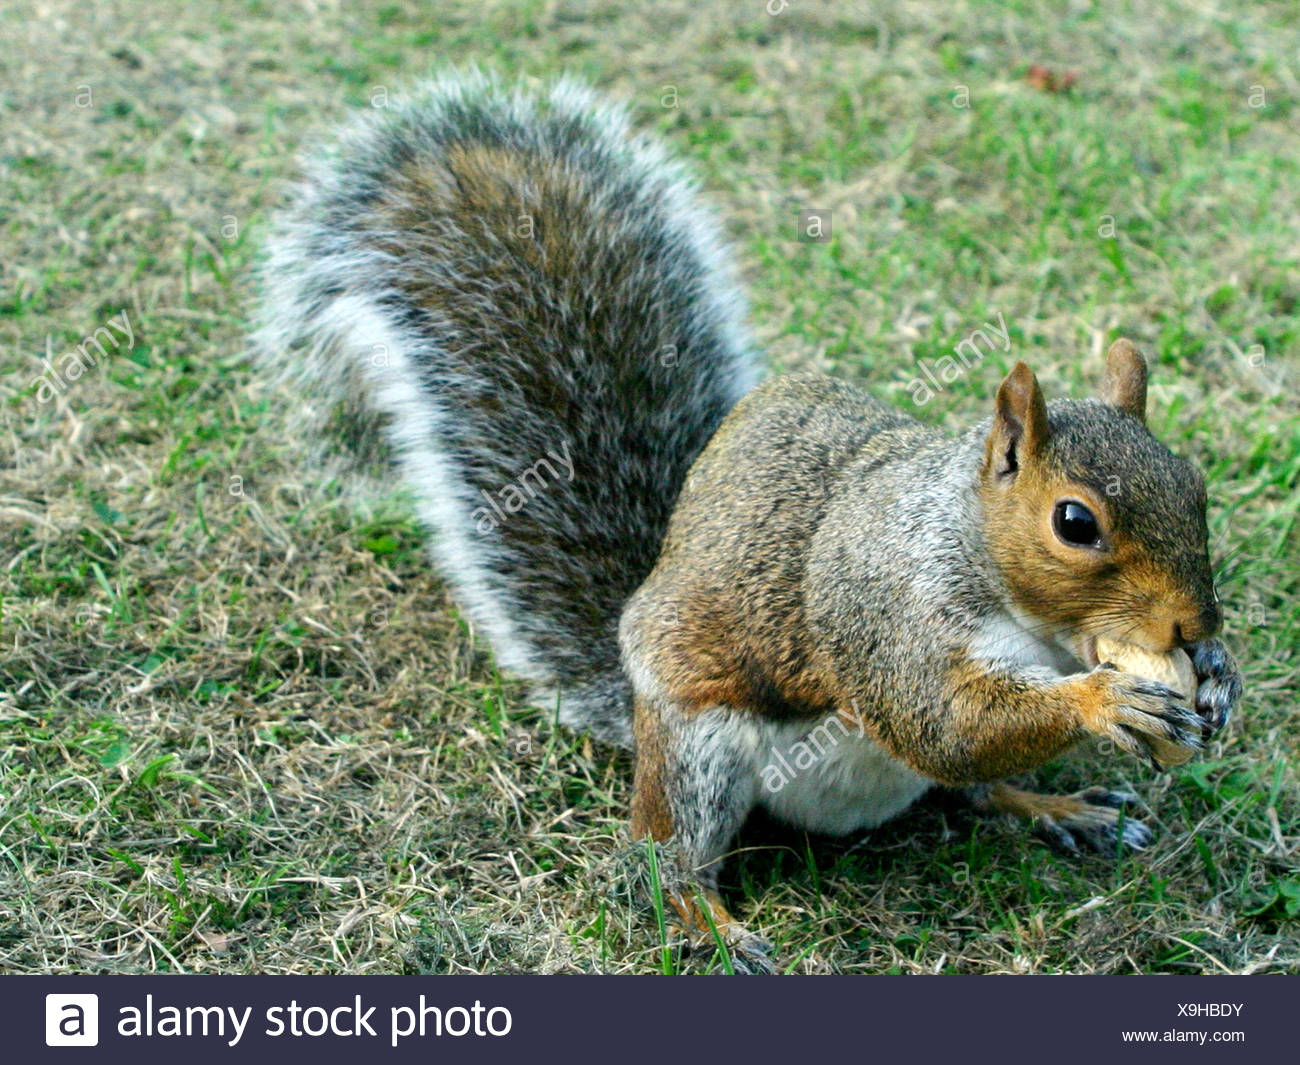 A grey squirrel eating a monkey nut - Stock Image